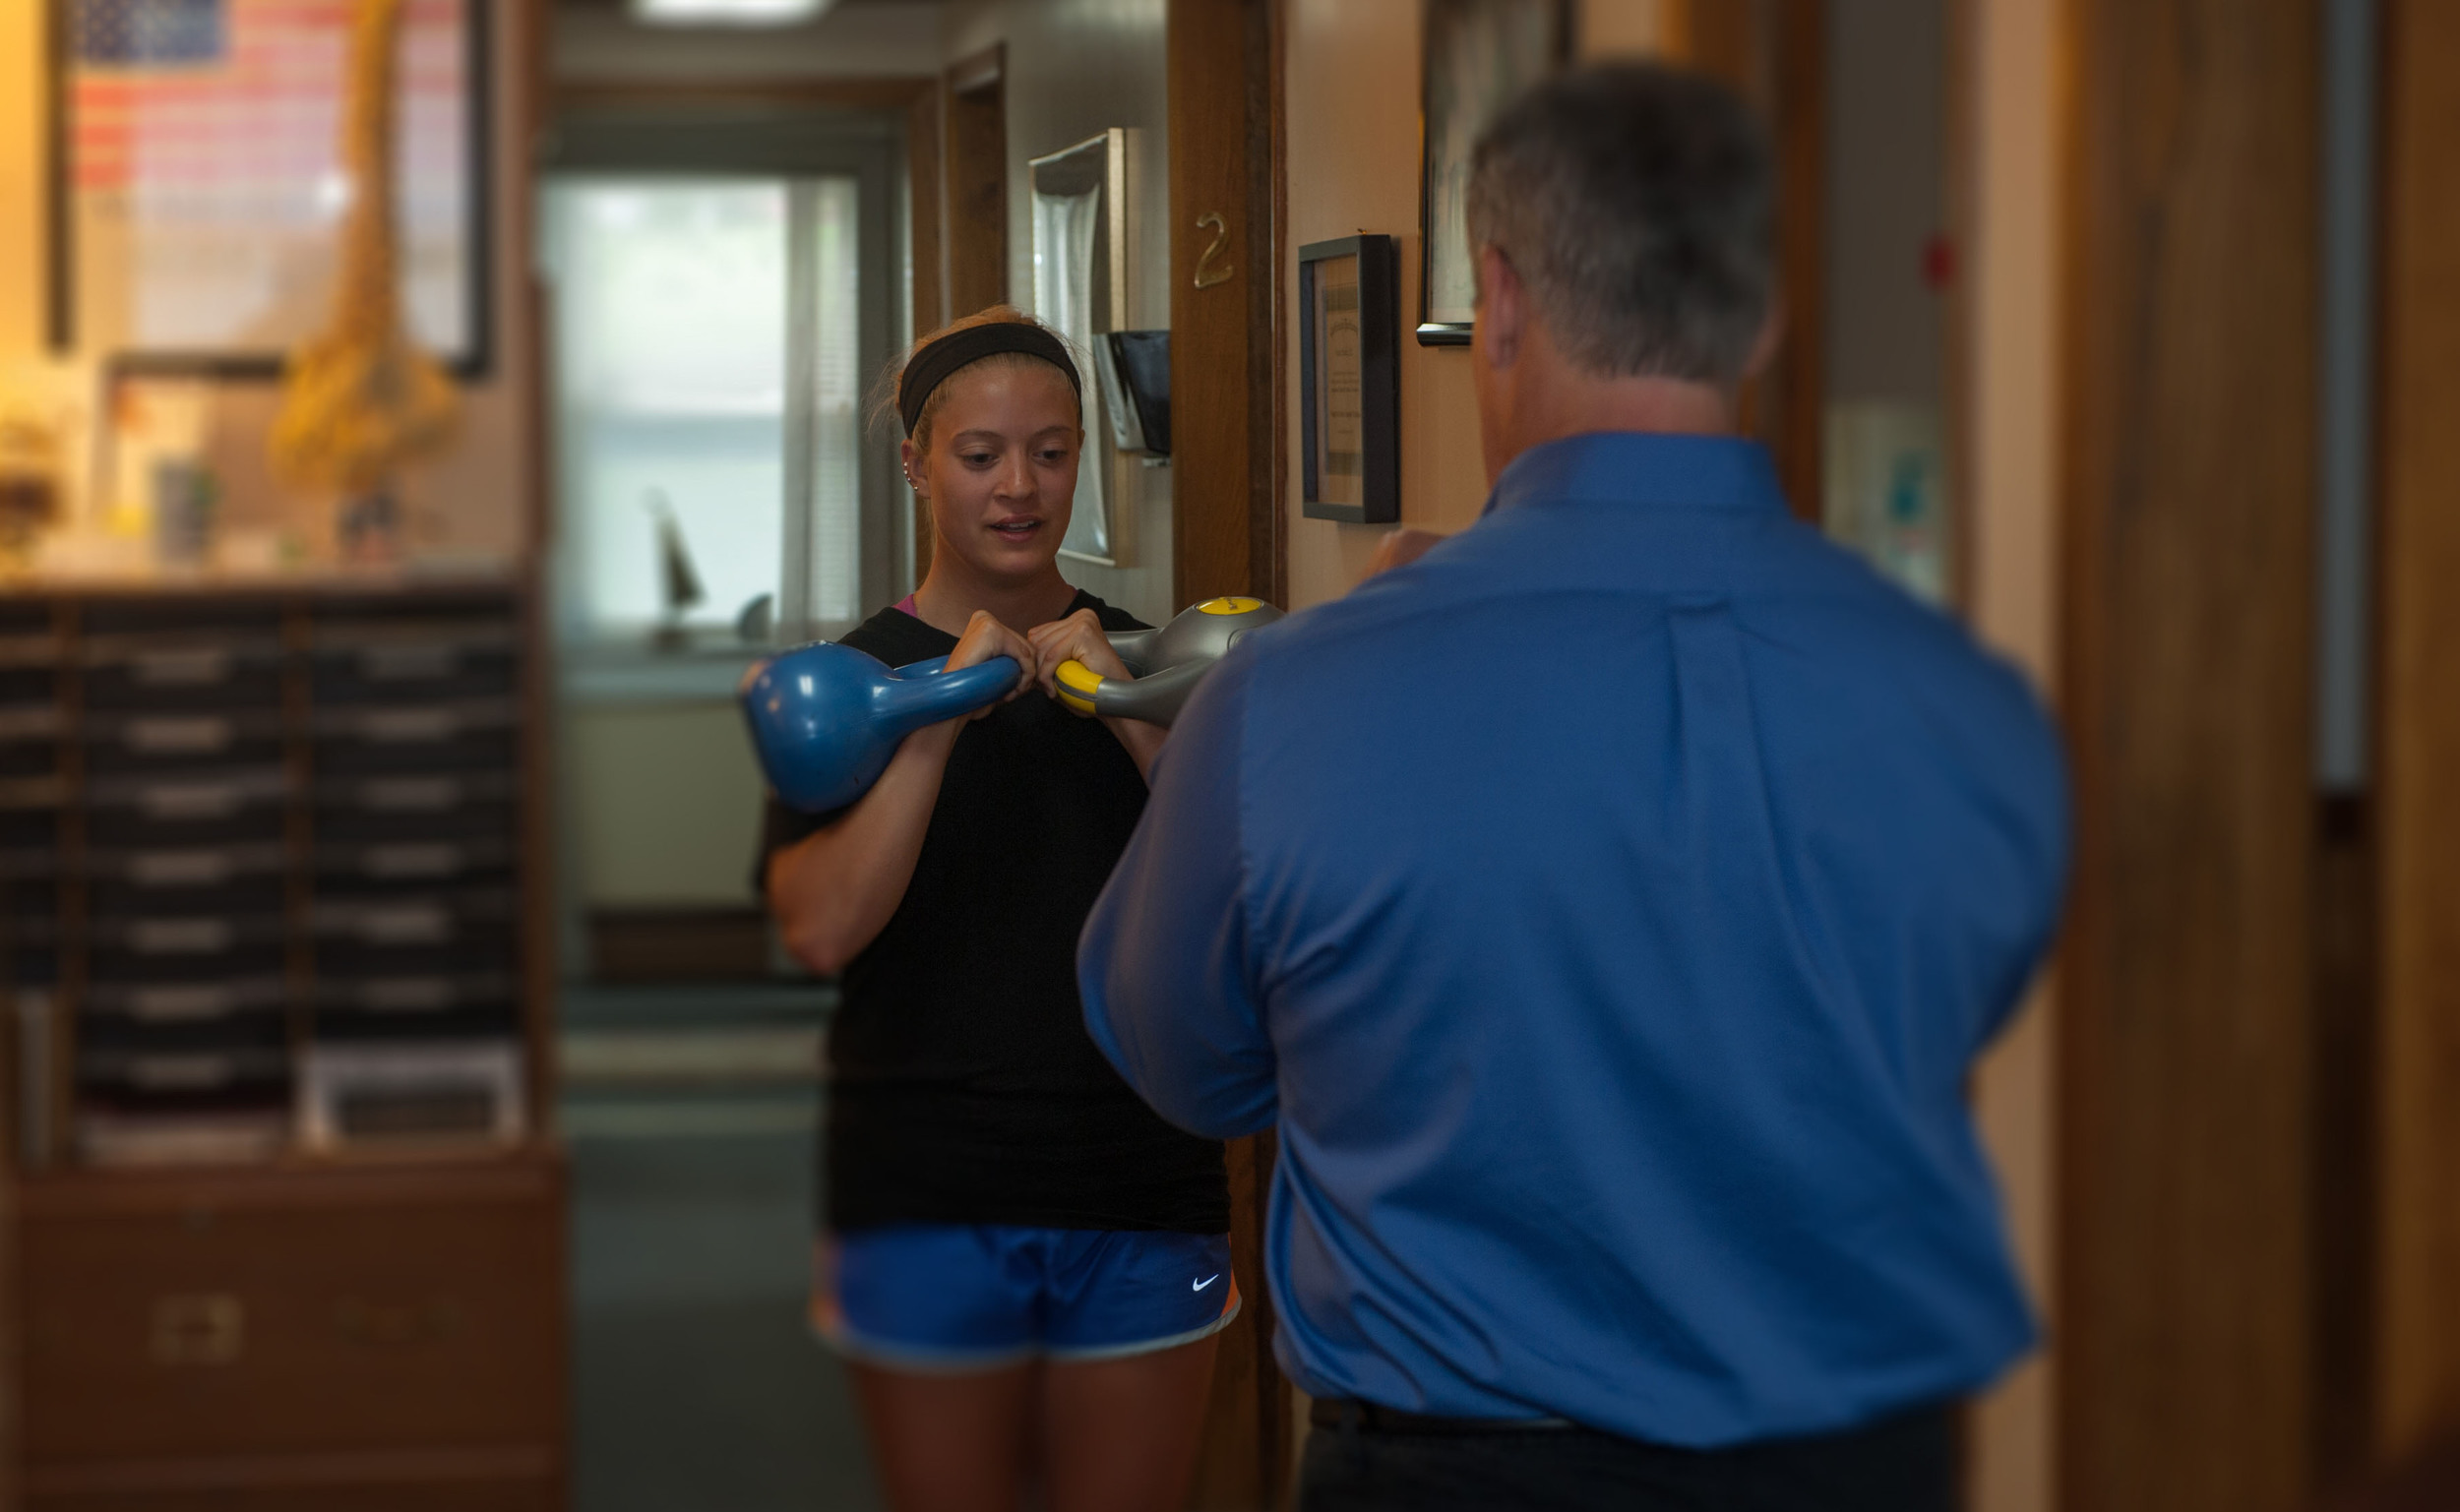 Dr. Brunelle works with athletes to help prevent injuries and strain.